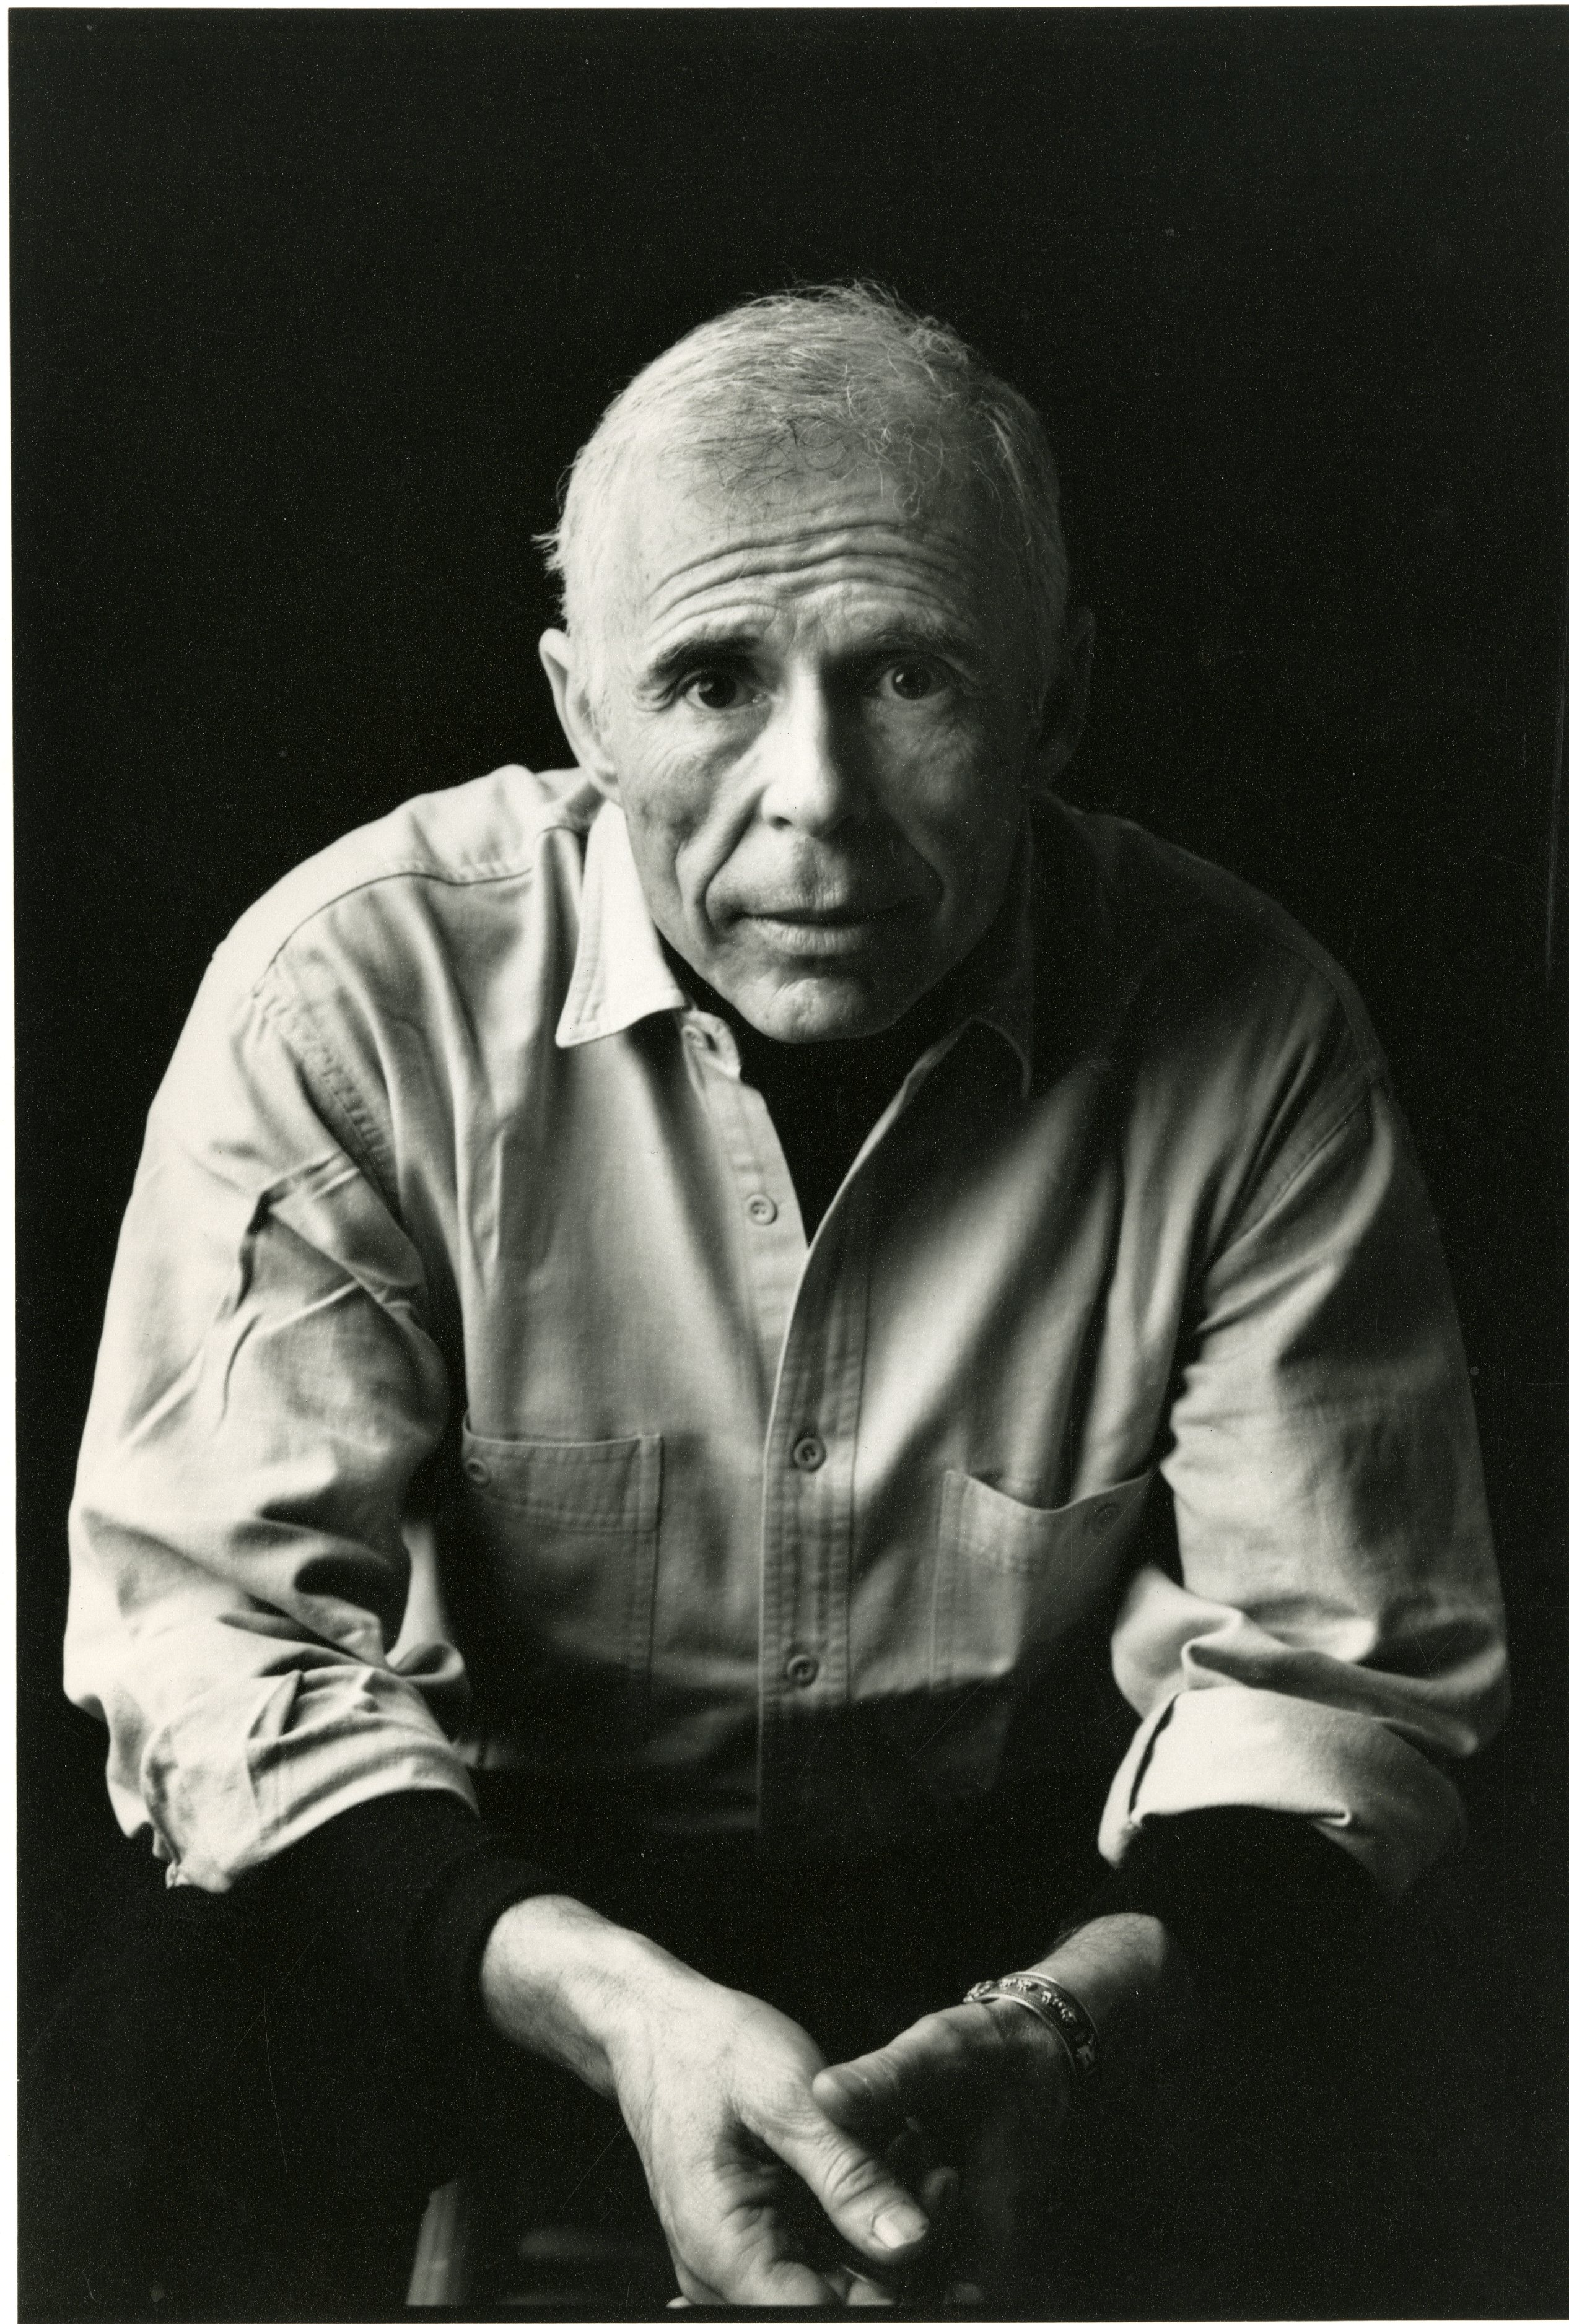 A black-and-white portrait of Jean-Claude van Itallie, a seated older man with white hair wearing a collared shirt